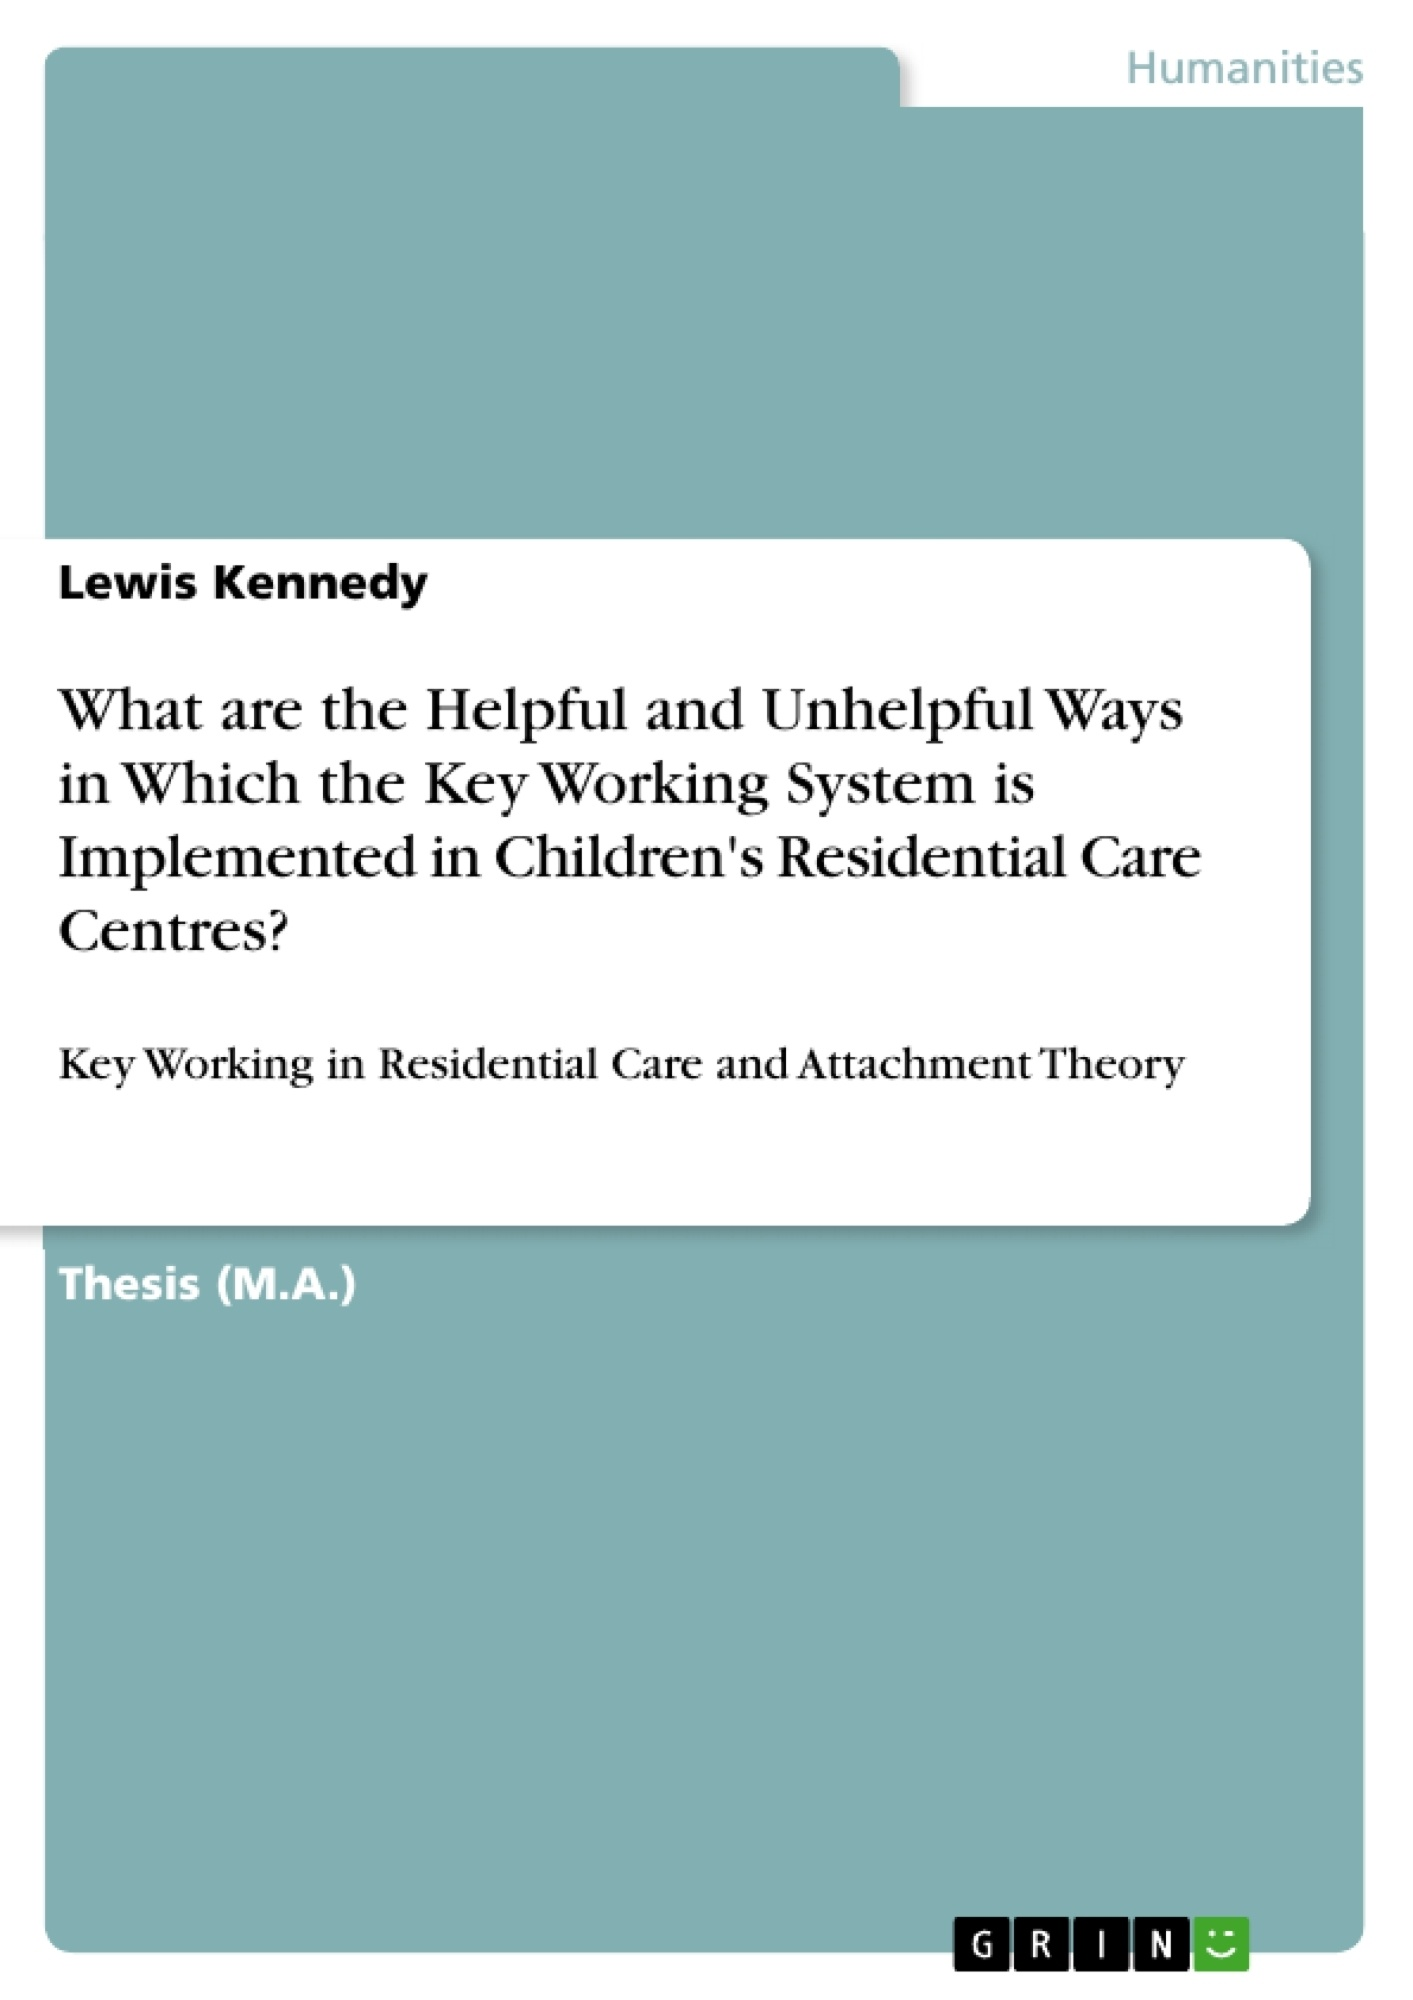 Title: What are the Helpful and Unhelpful Ways in Which the Key Working System is Implemented in Children's Residential Care Centres?